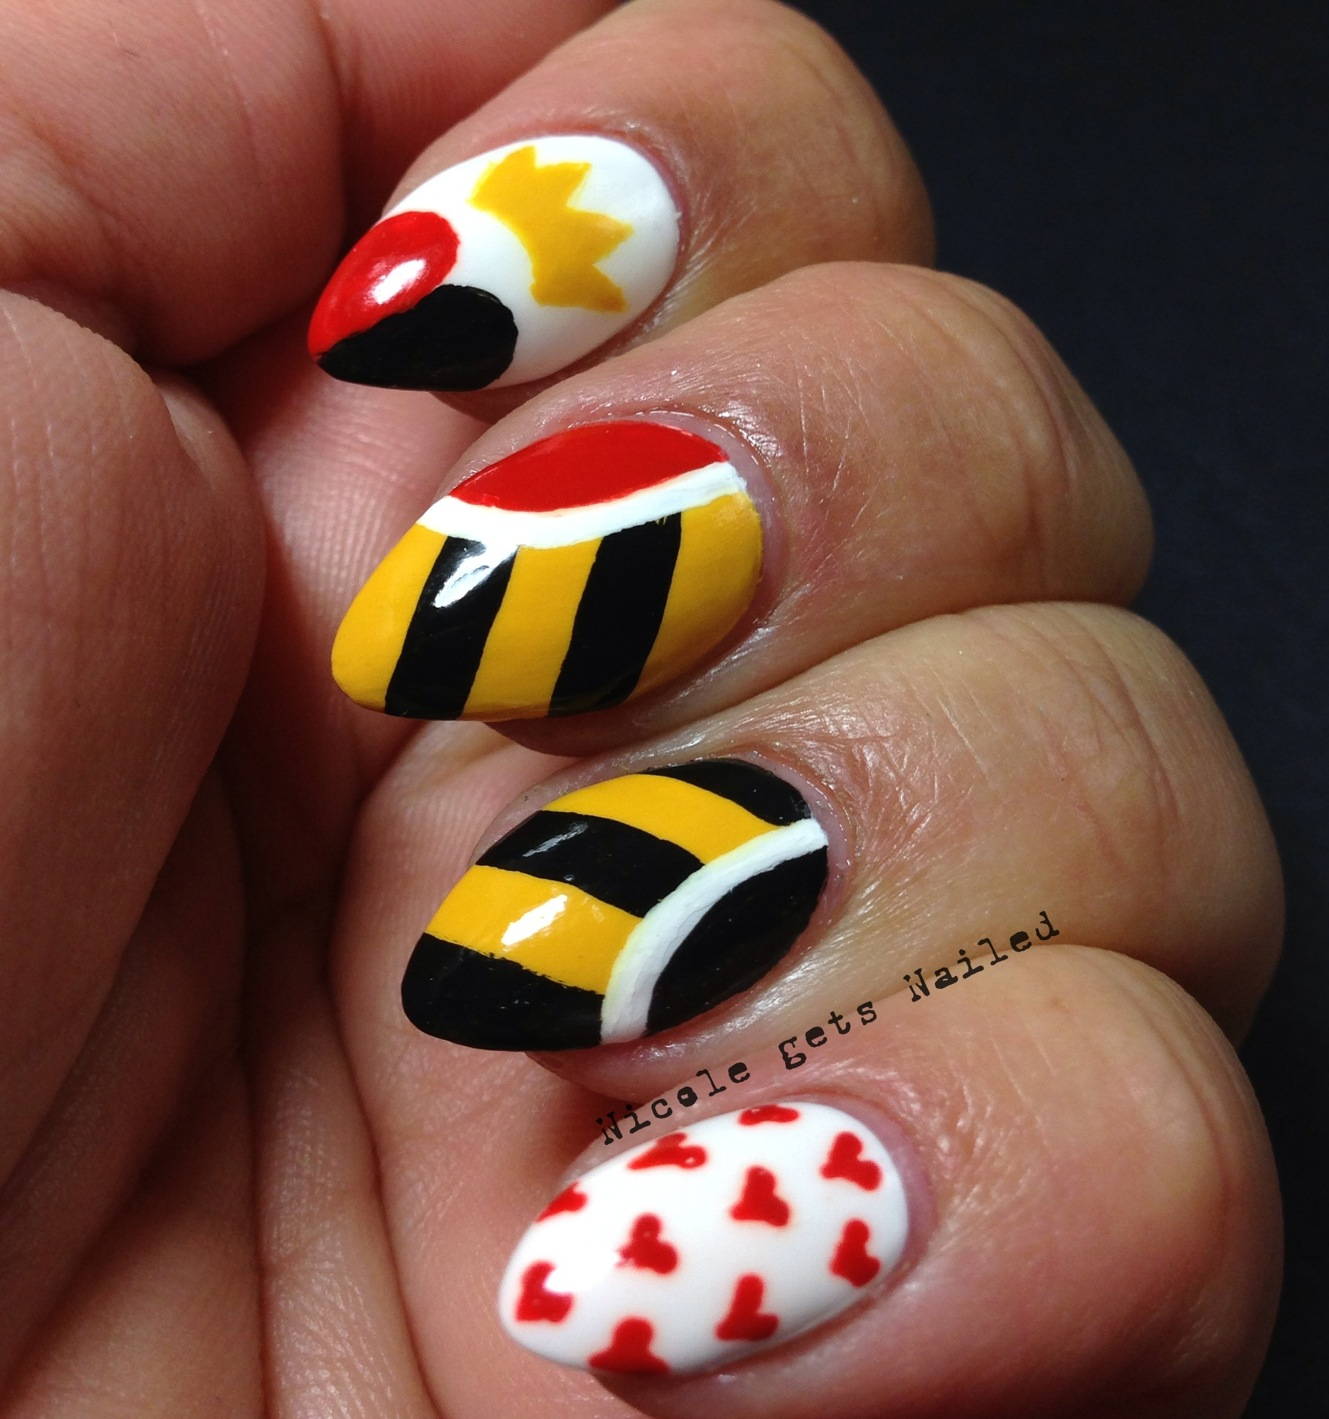 Nicole gets Nailed: Q is for Queen of Hearts